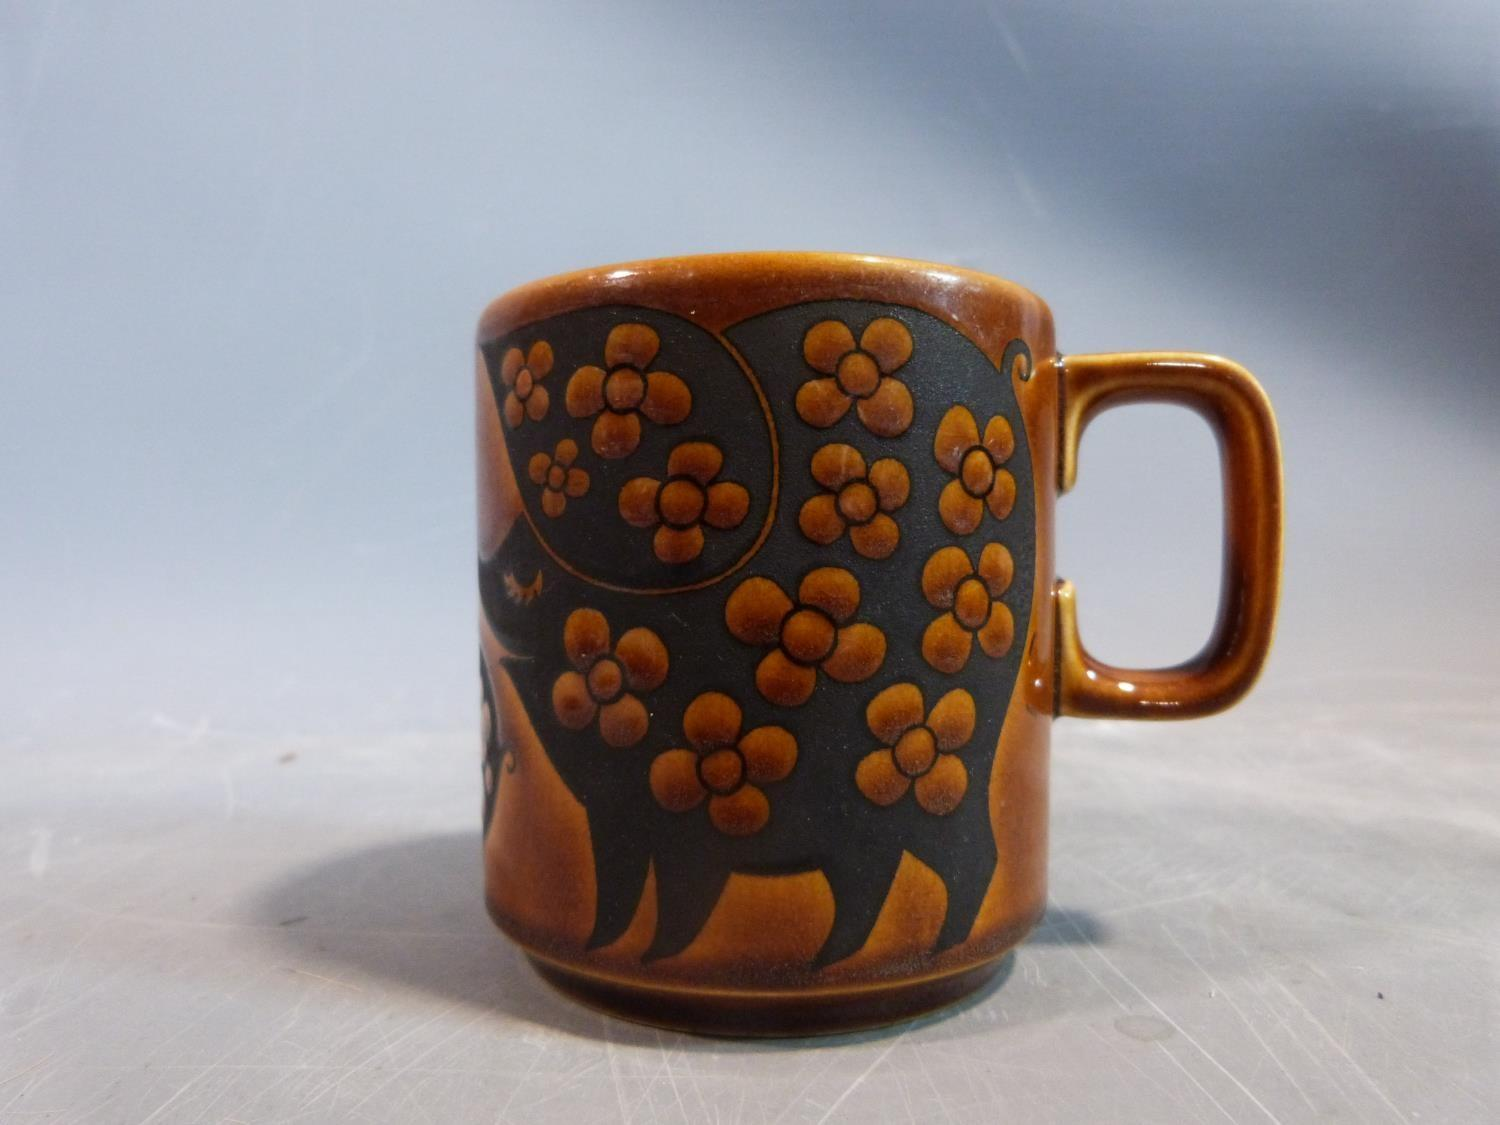 A collection of 1970's Hornsea mugs designed by John Clappison, a studio pottery vase and three - Image 9 of 22